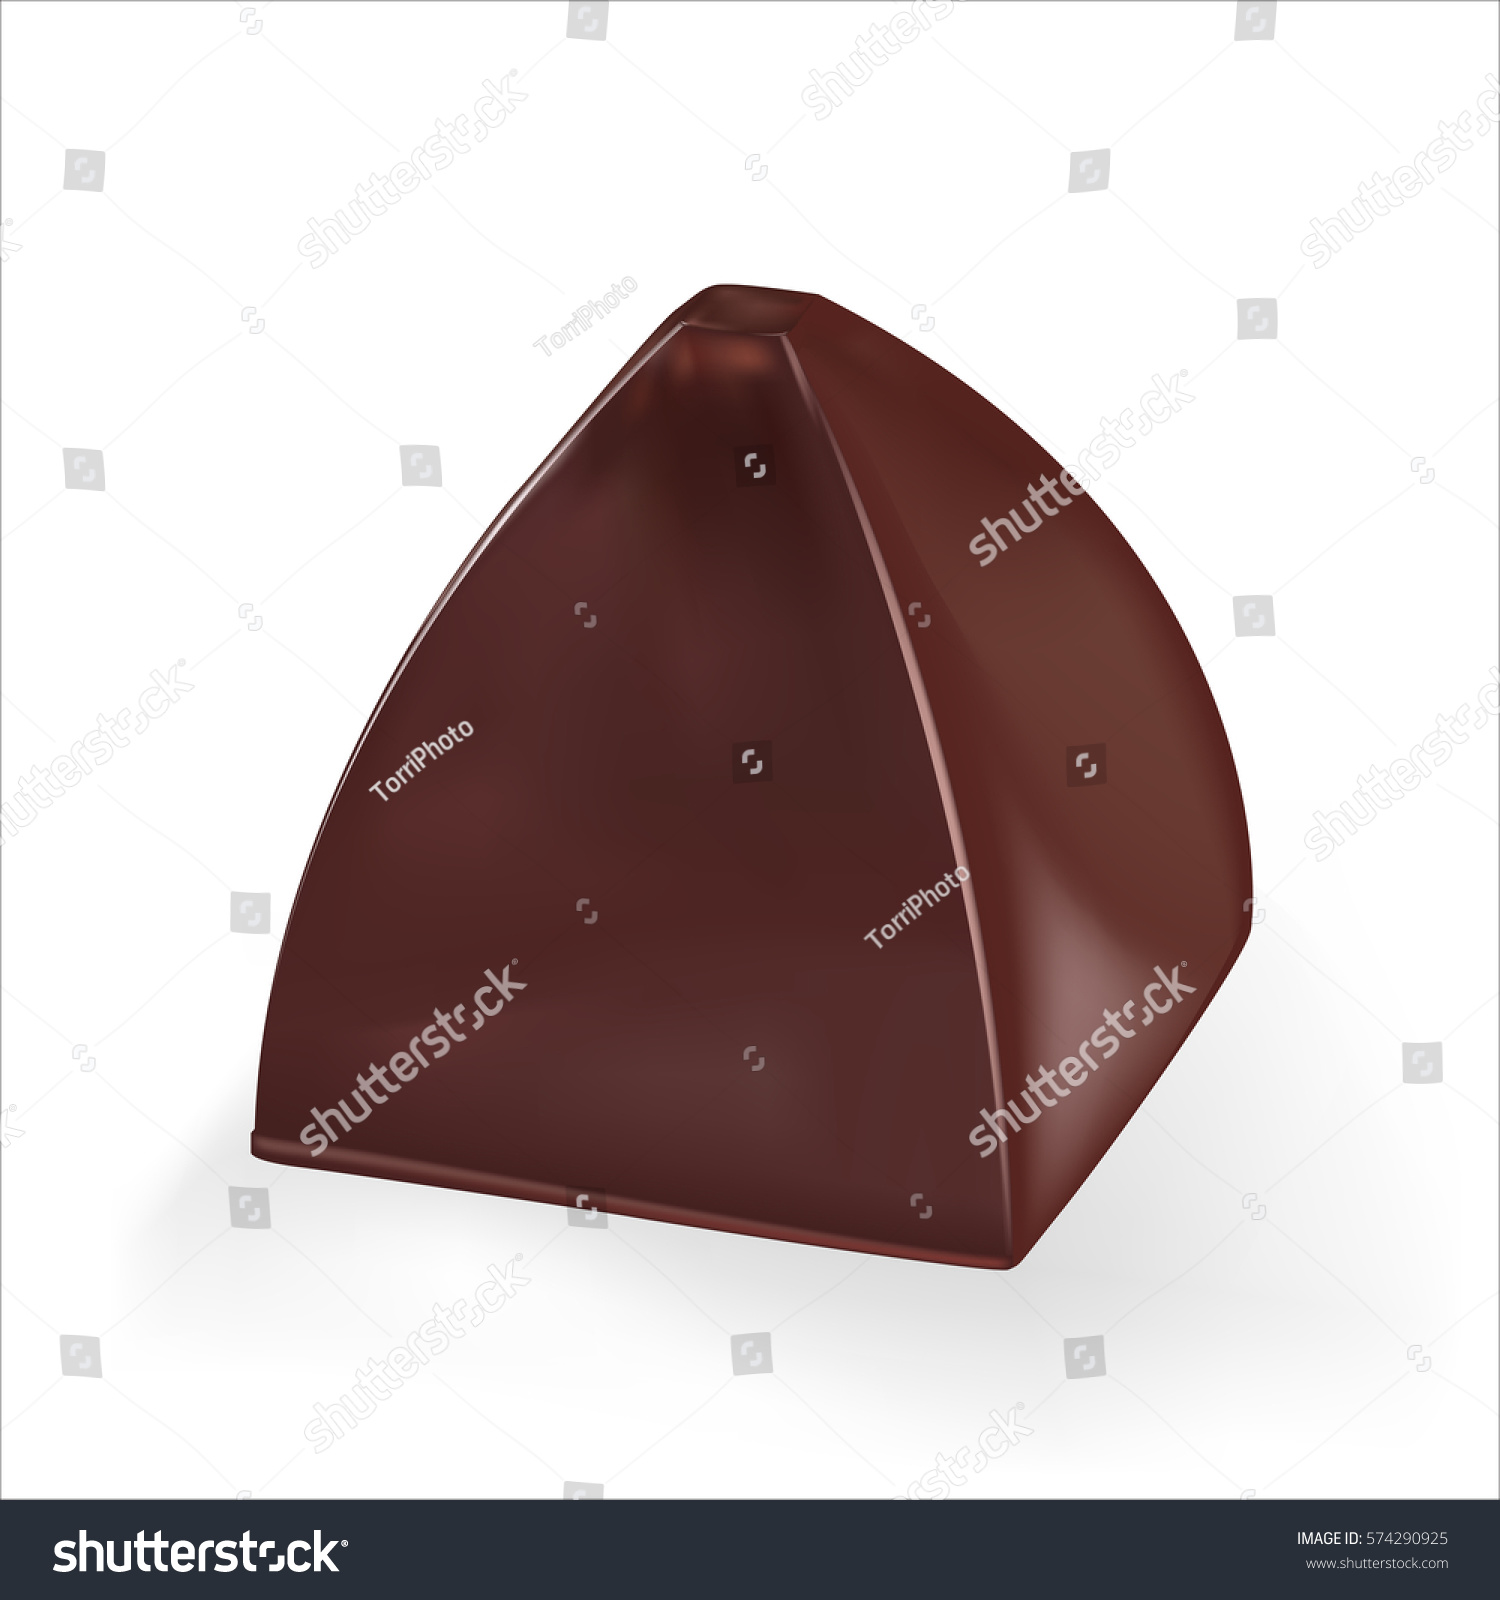 https://www.shutterstock.com/image-vector/pyramid-shape-chocolate-candy-vector-realistic-574290925